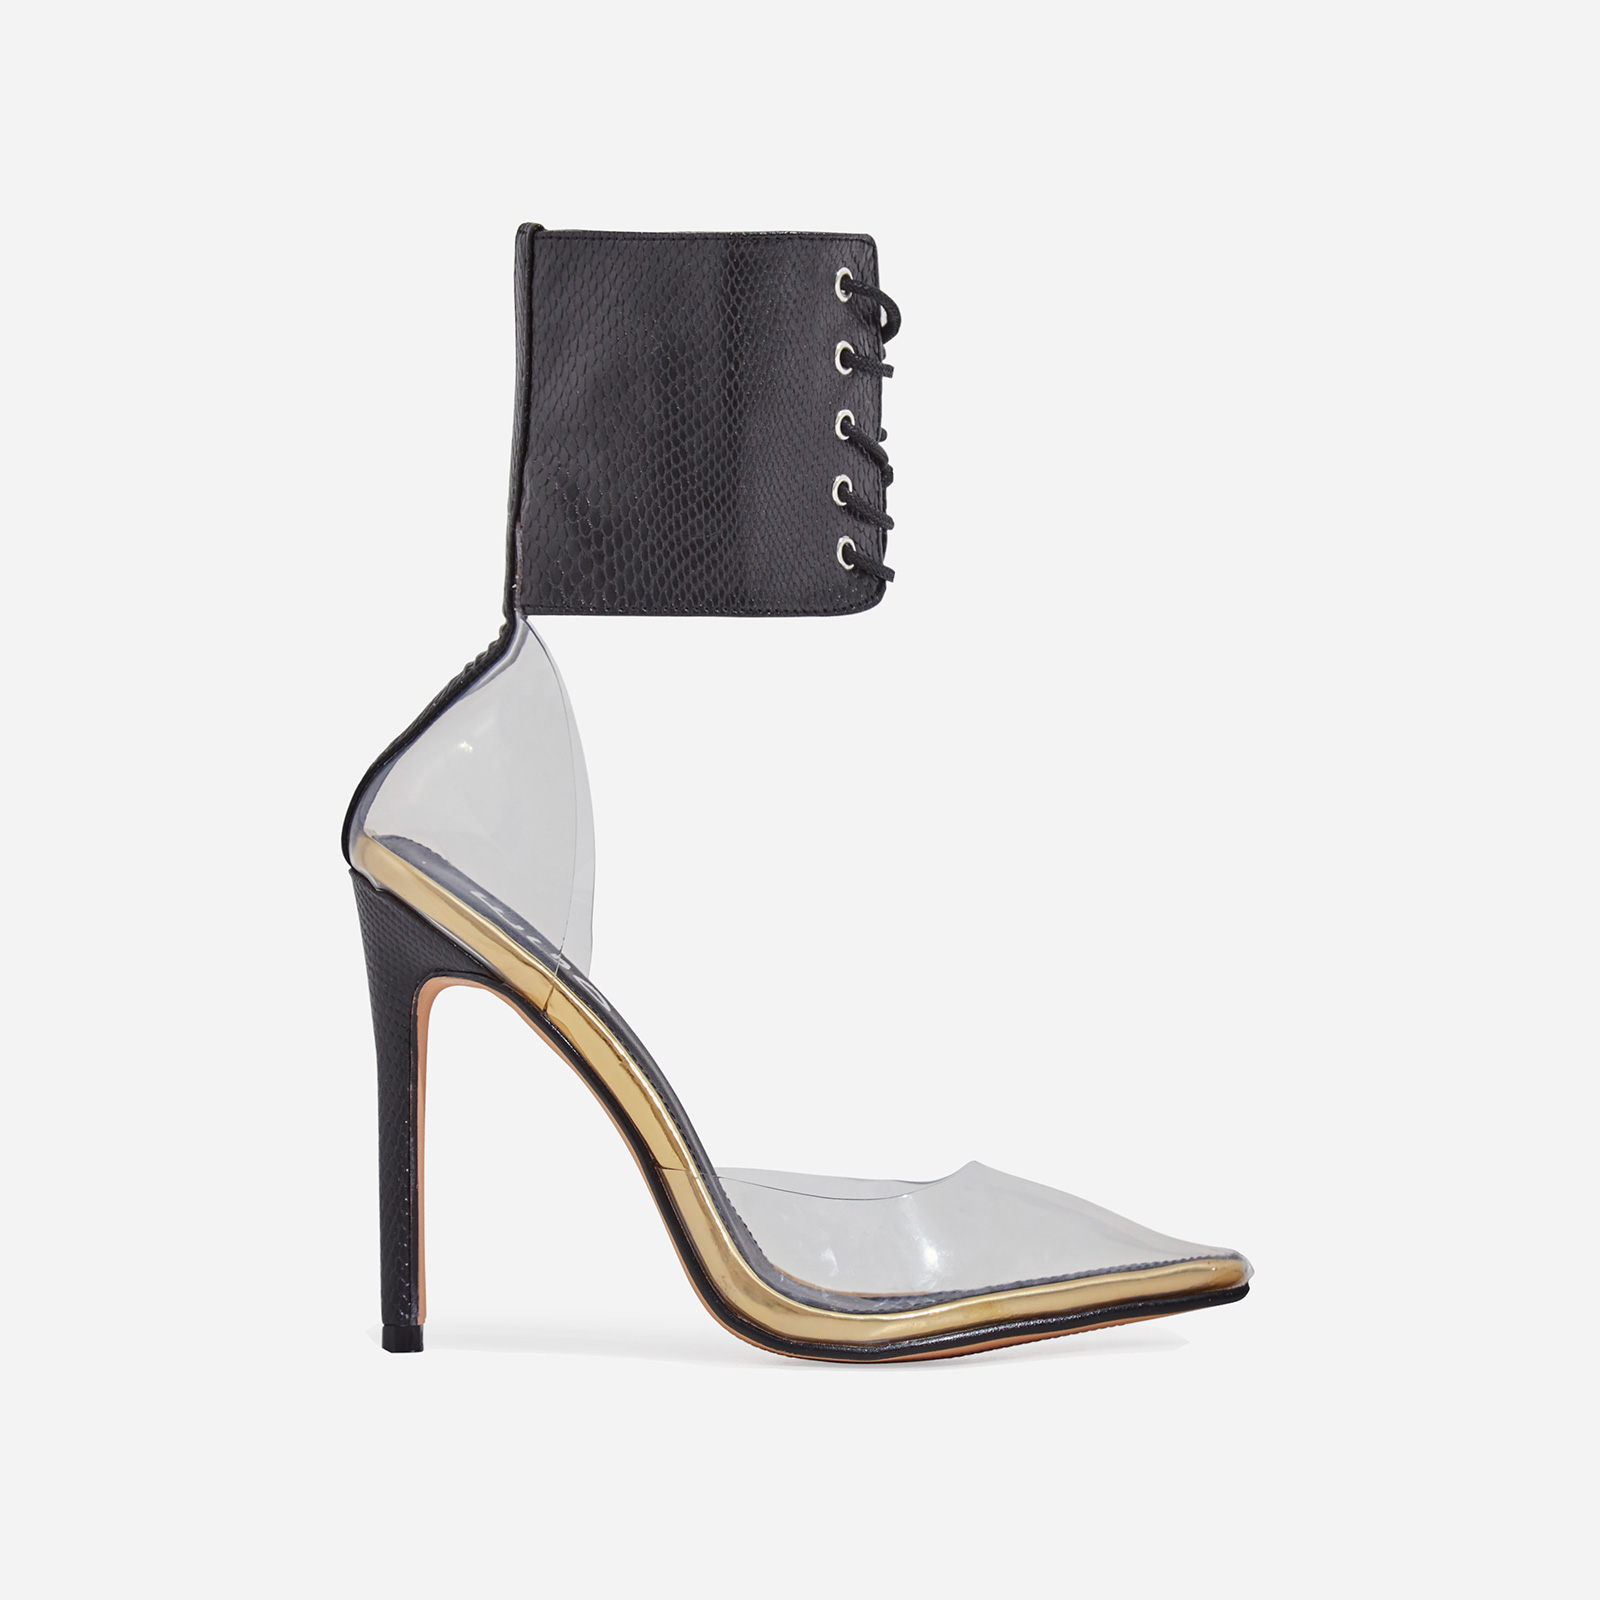 Play Lace Up Perspex Heel In Black Snake Print Faux Leather